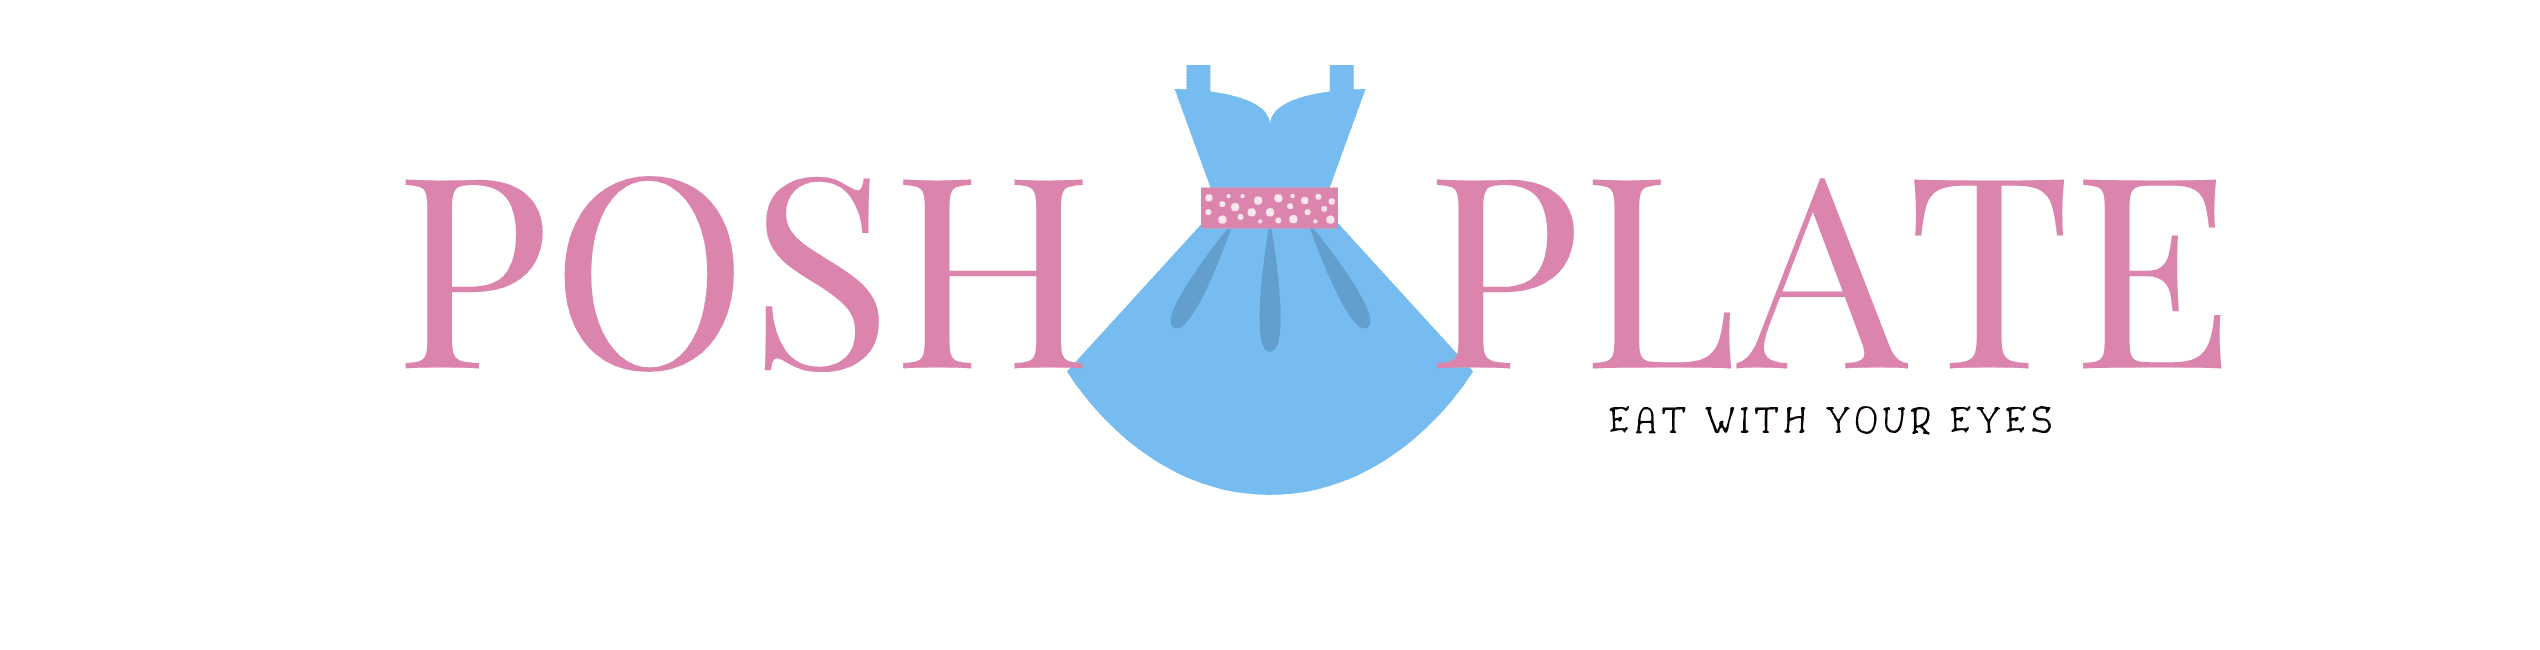 POSH PLATE LOGO DRESS POLKA DOTS